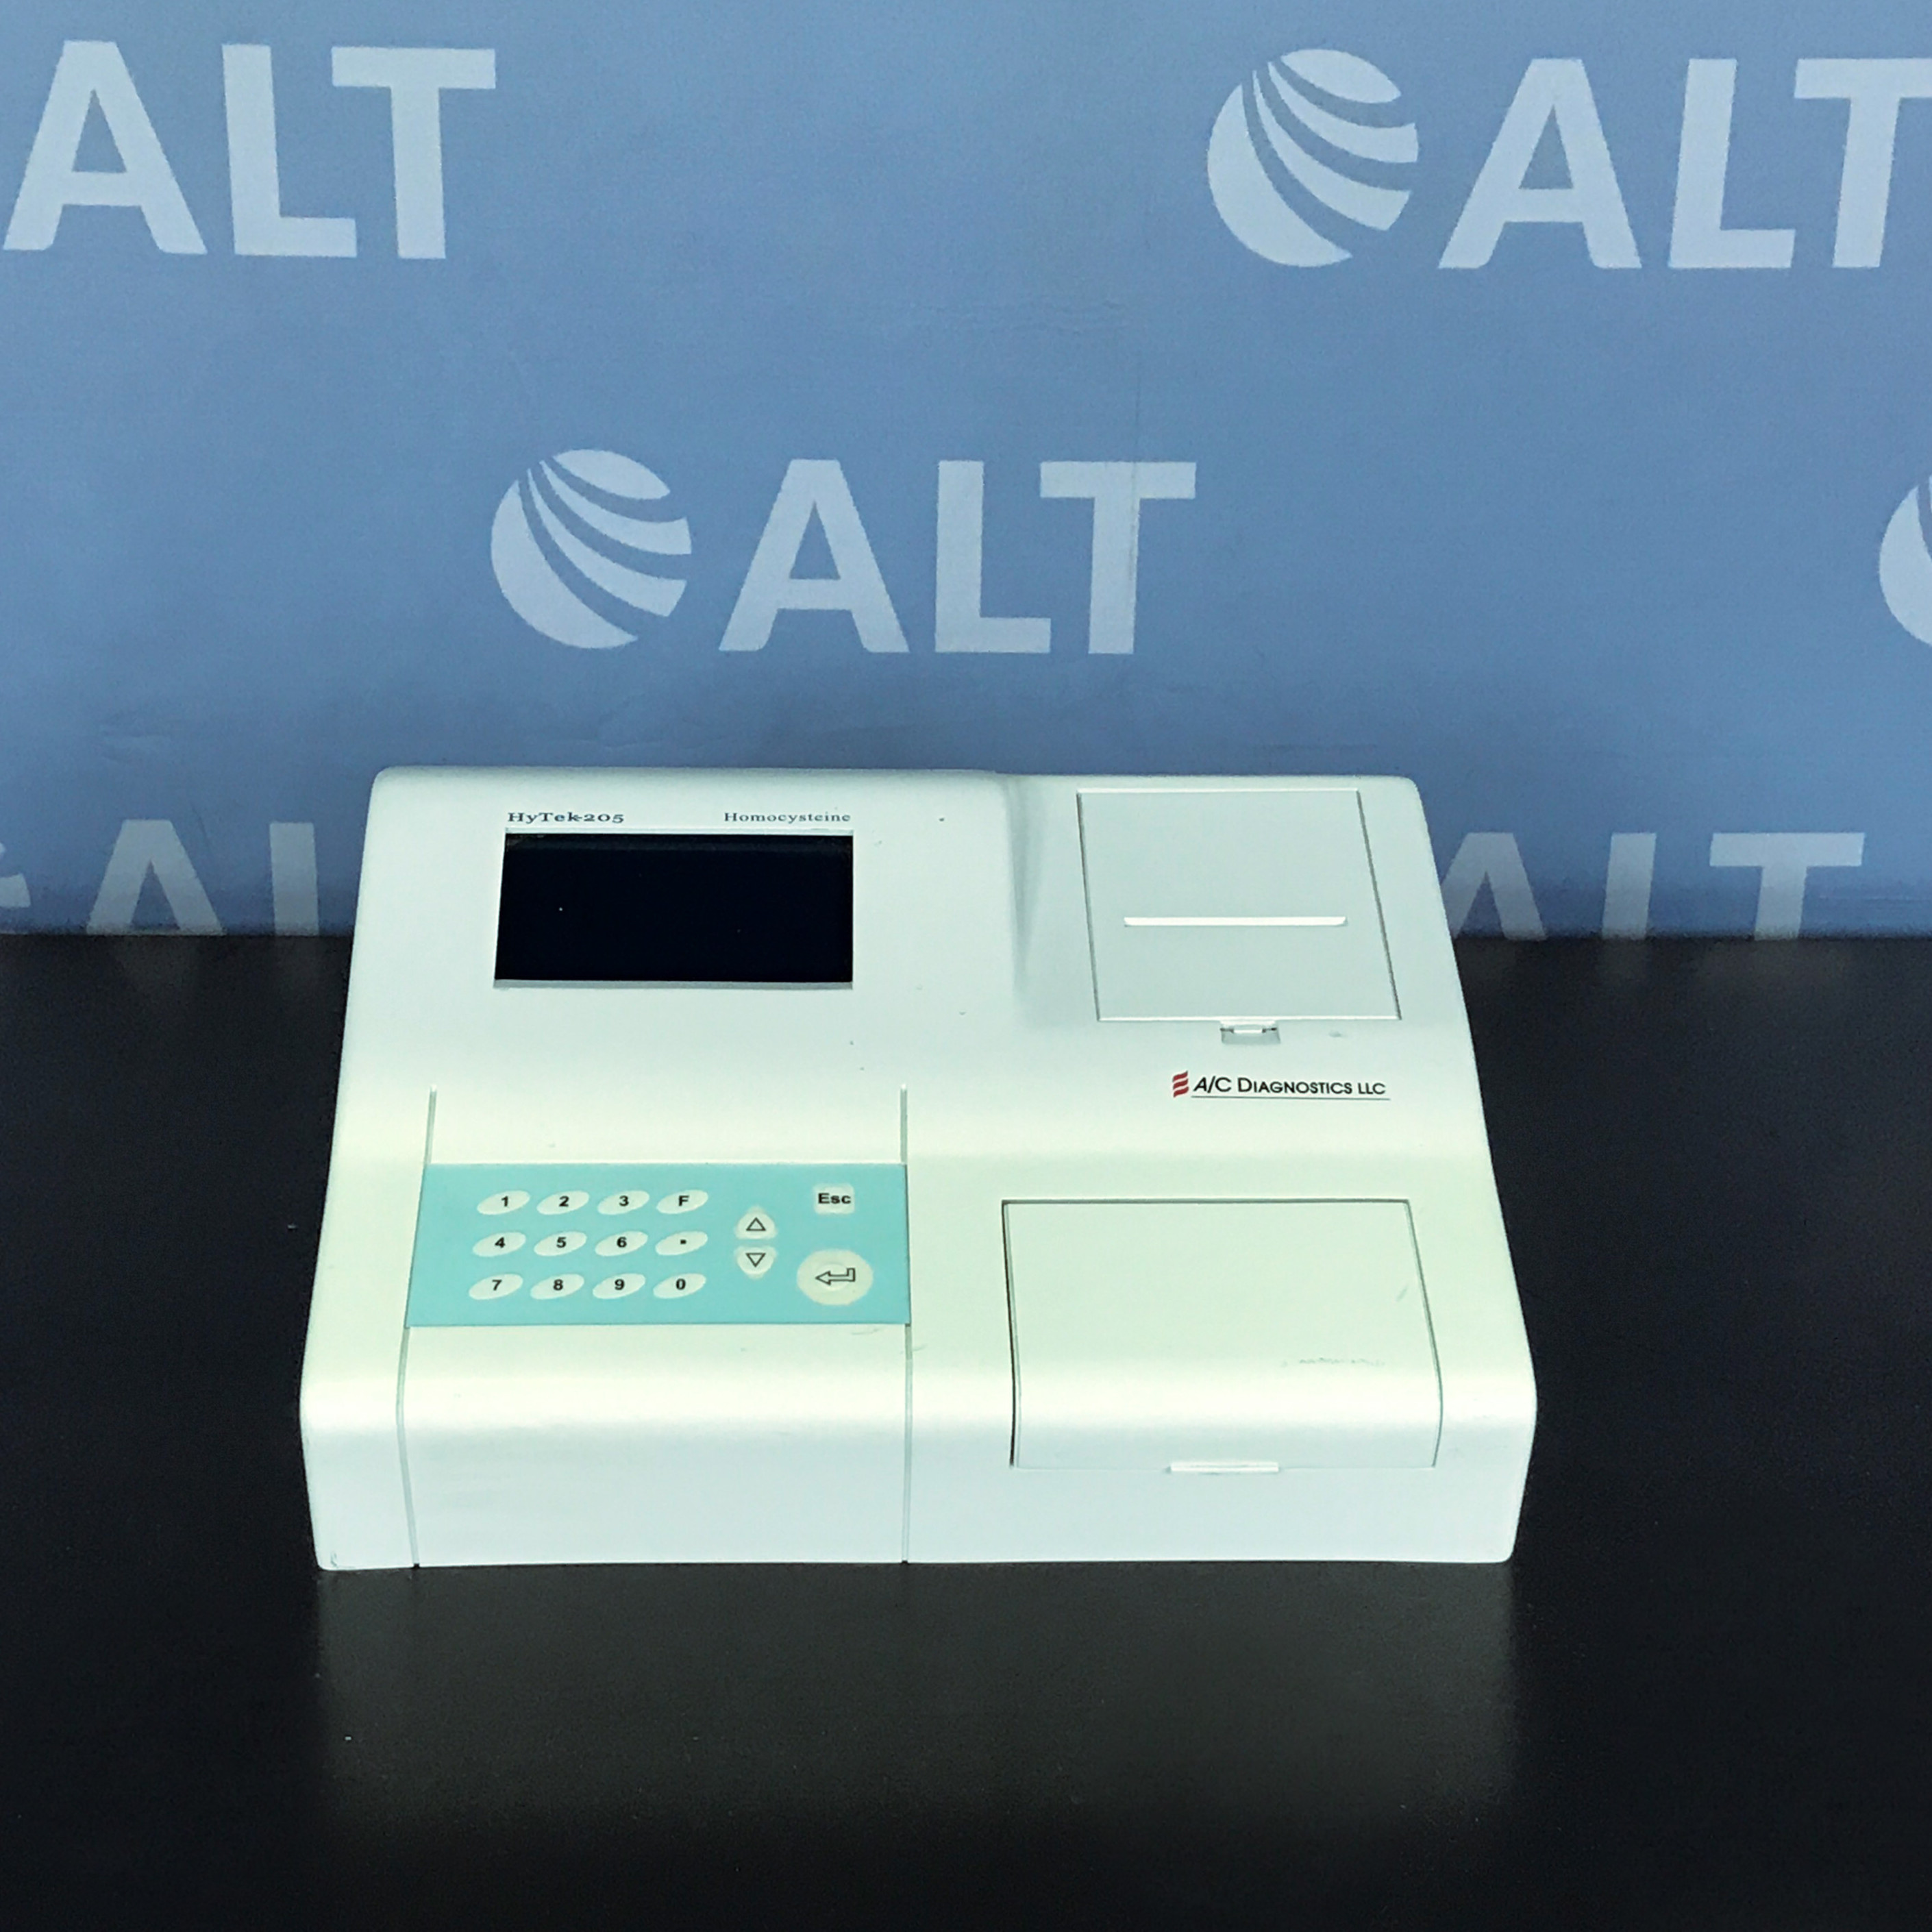 A/C Diagnostics LLC Hytek-205 Homocysteine Diagnostic Reader Image